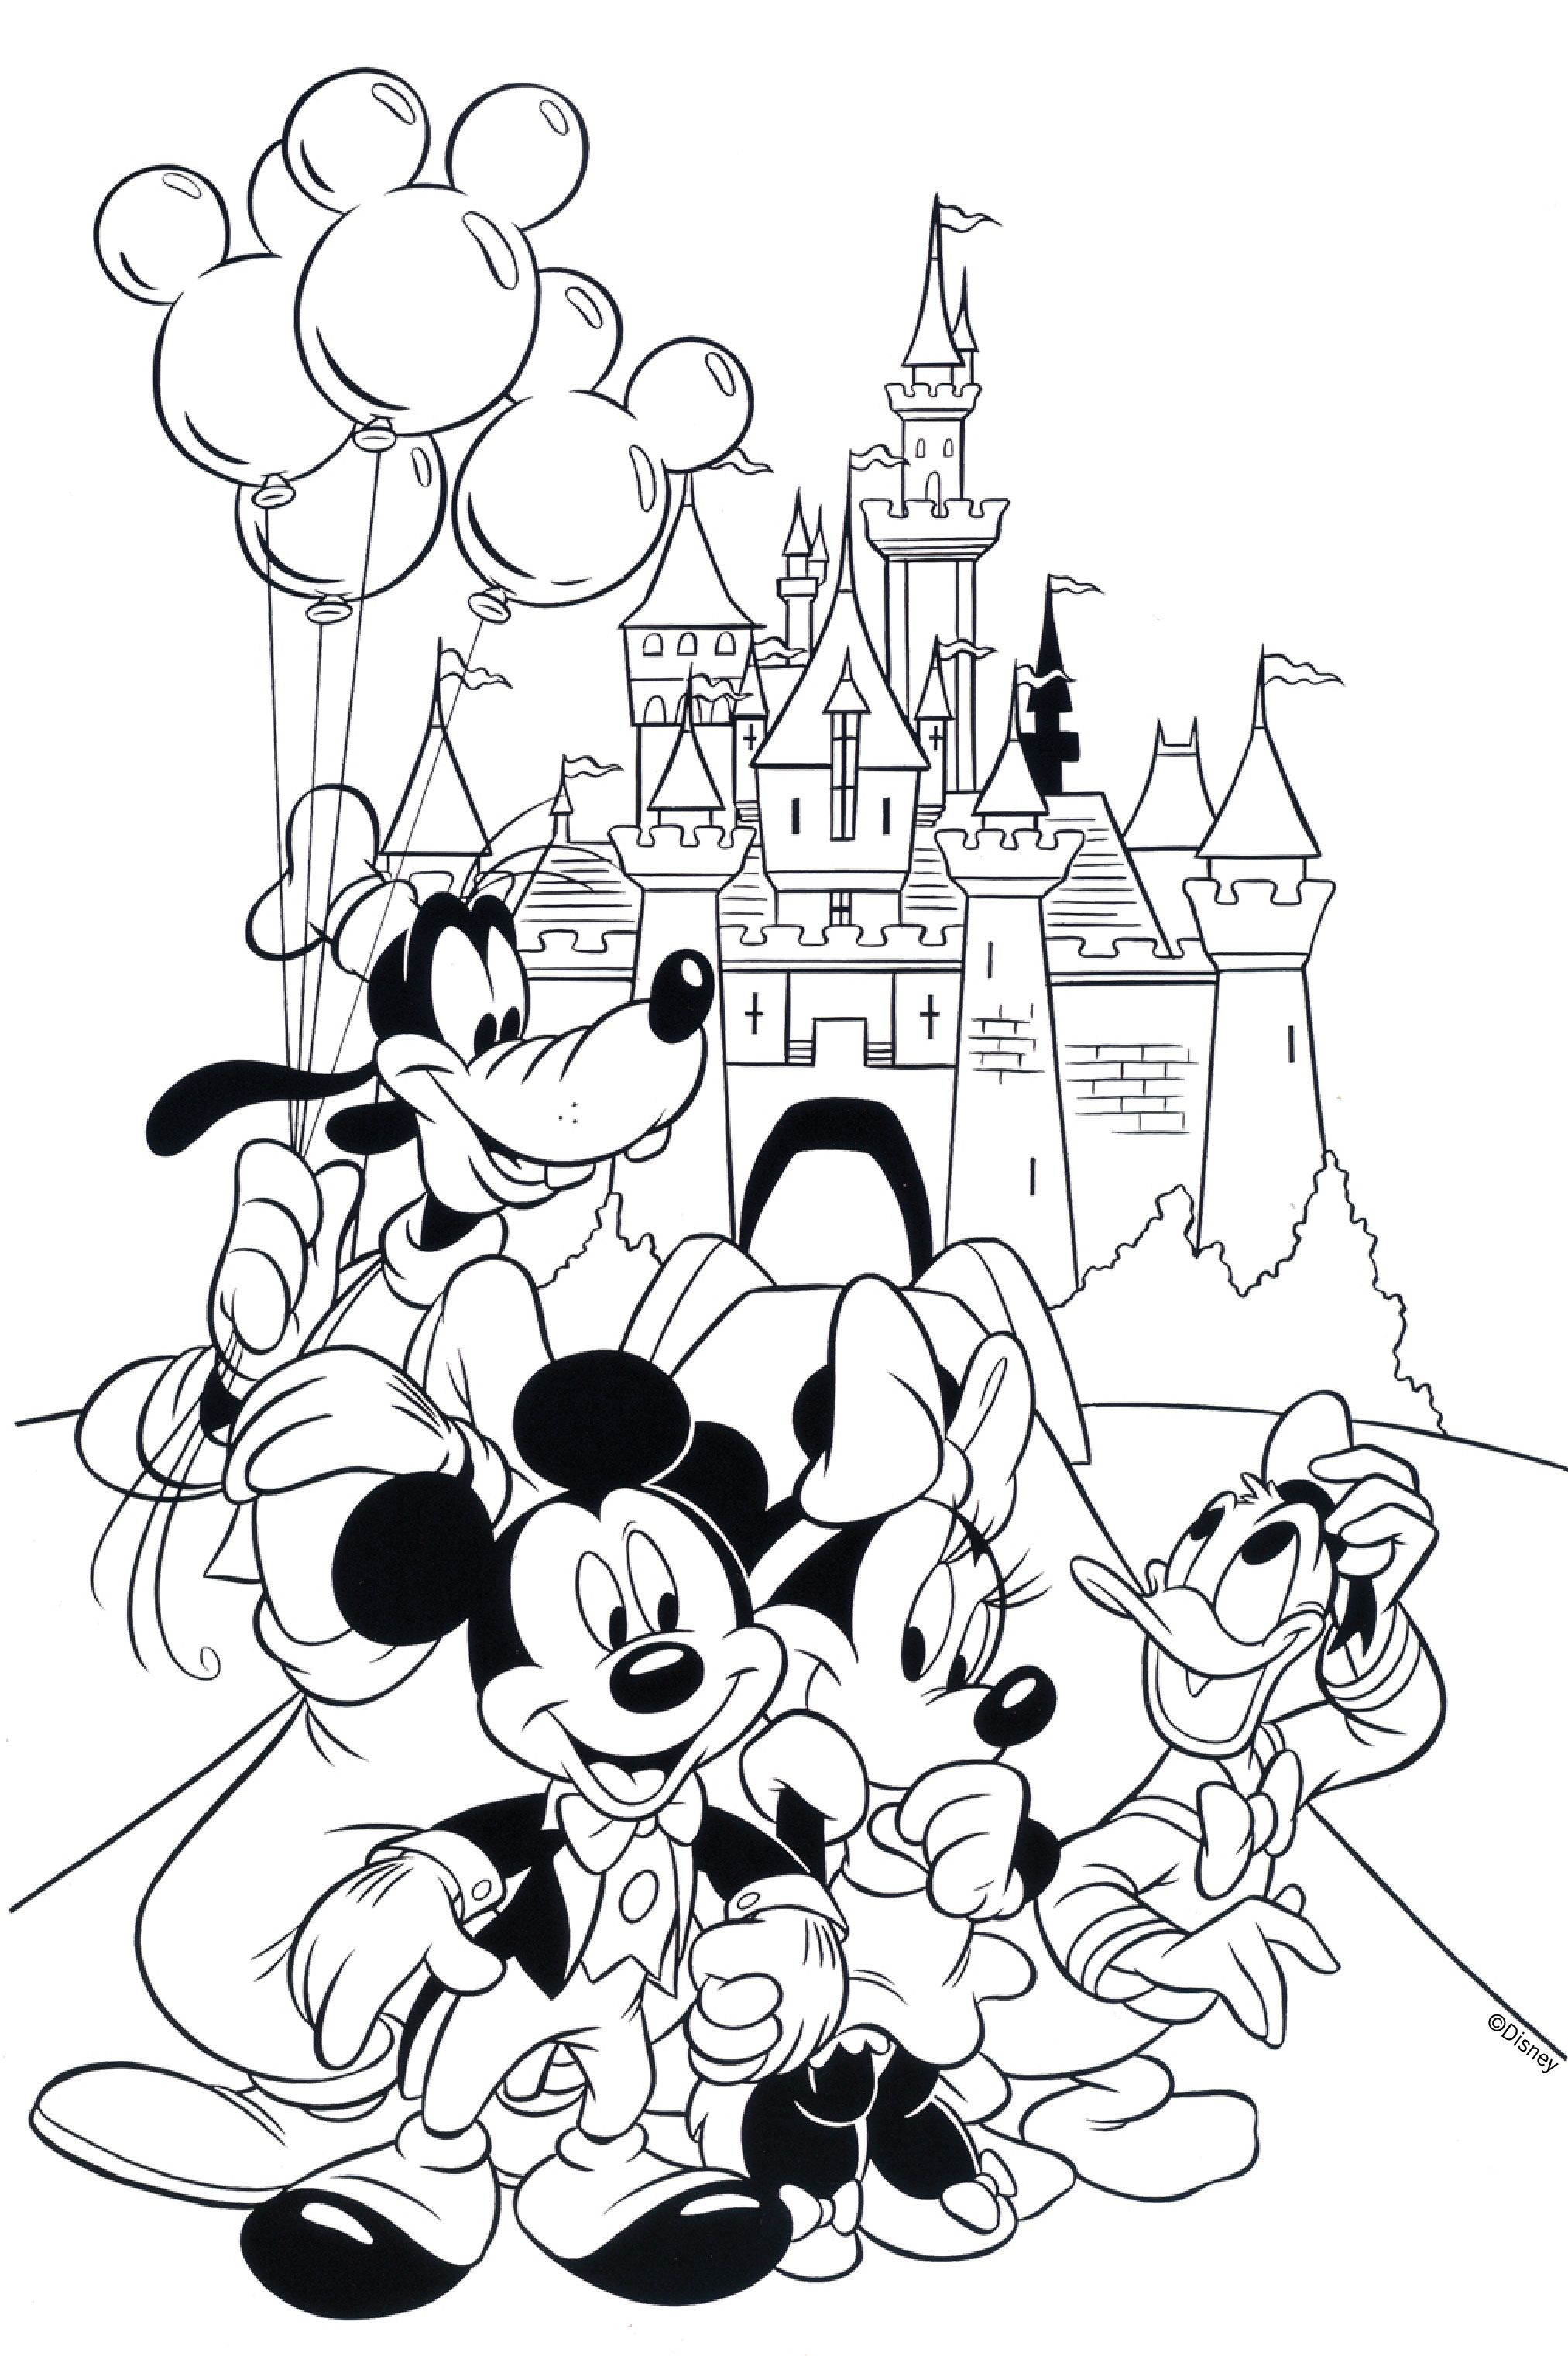 Free Disney Coloring Pages | Coloring Books | Pinterest | Coloring ...